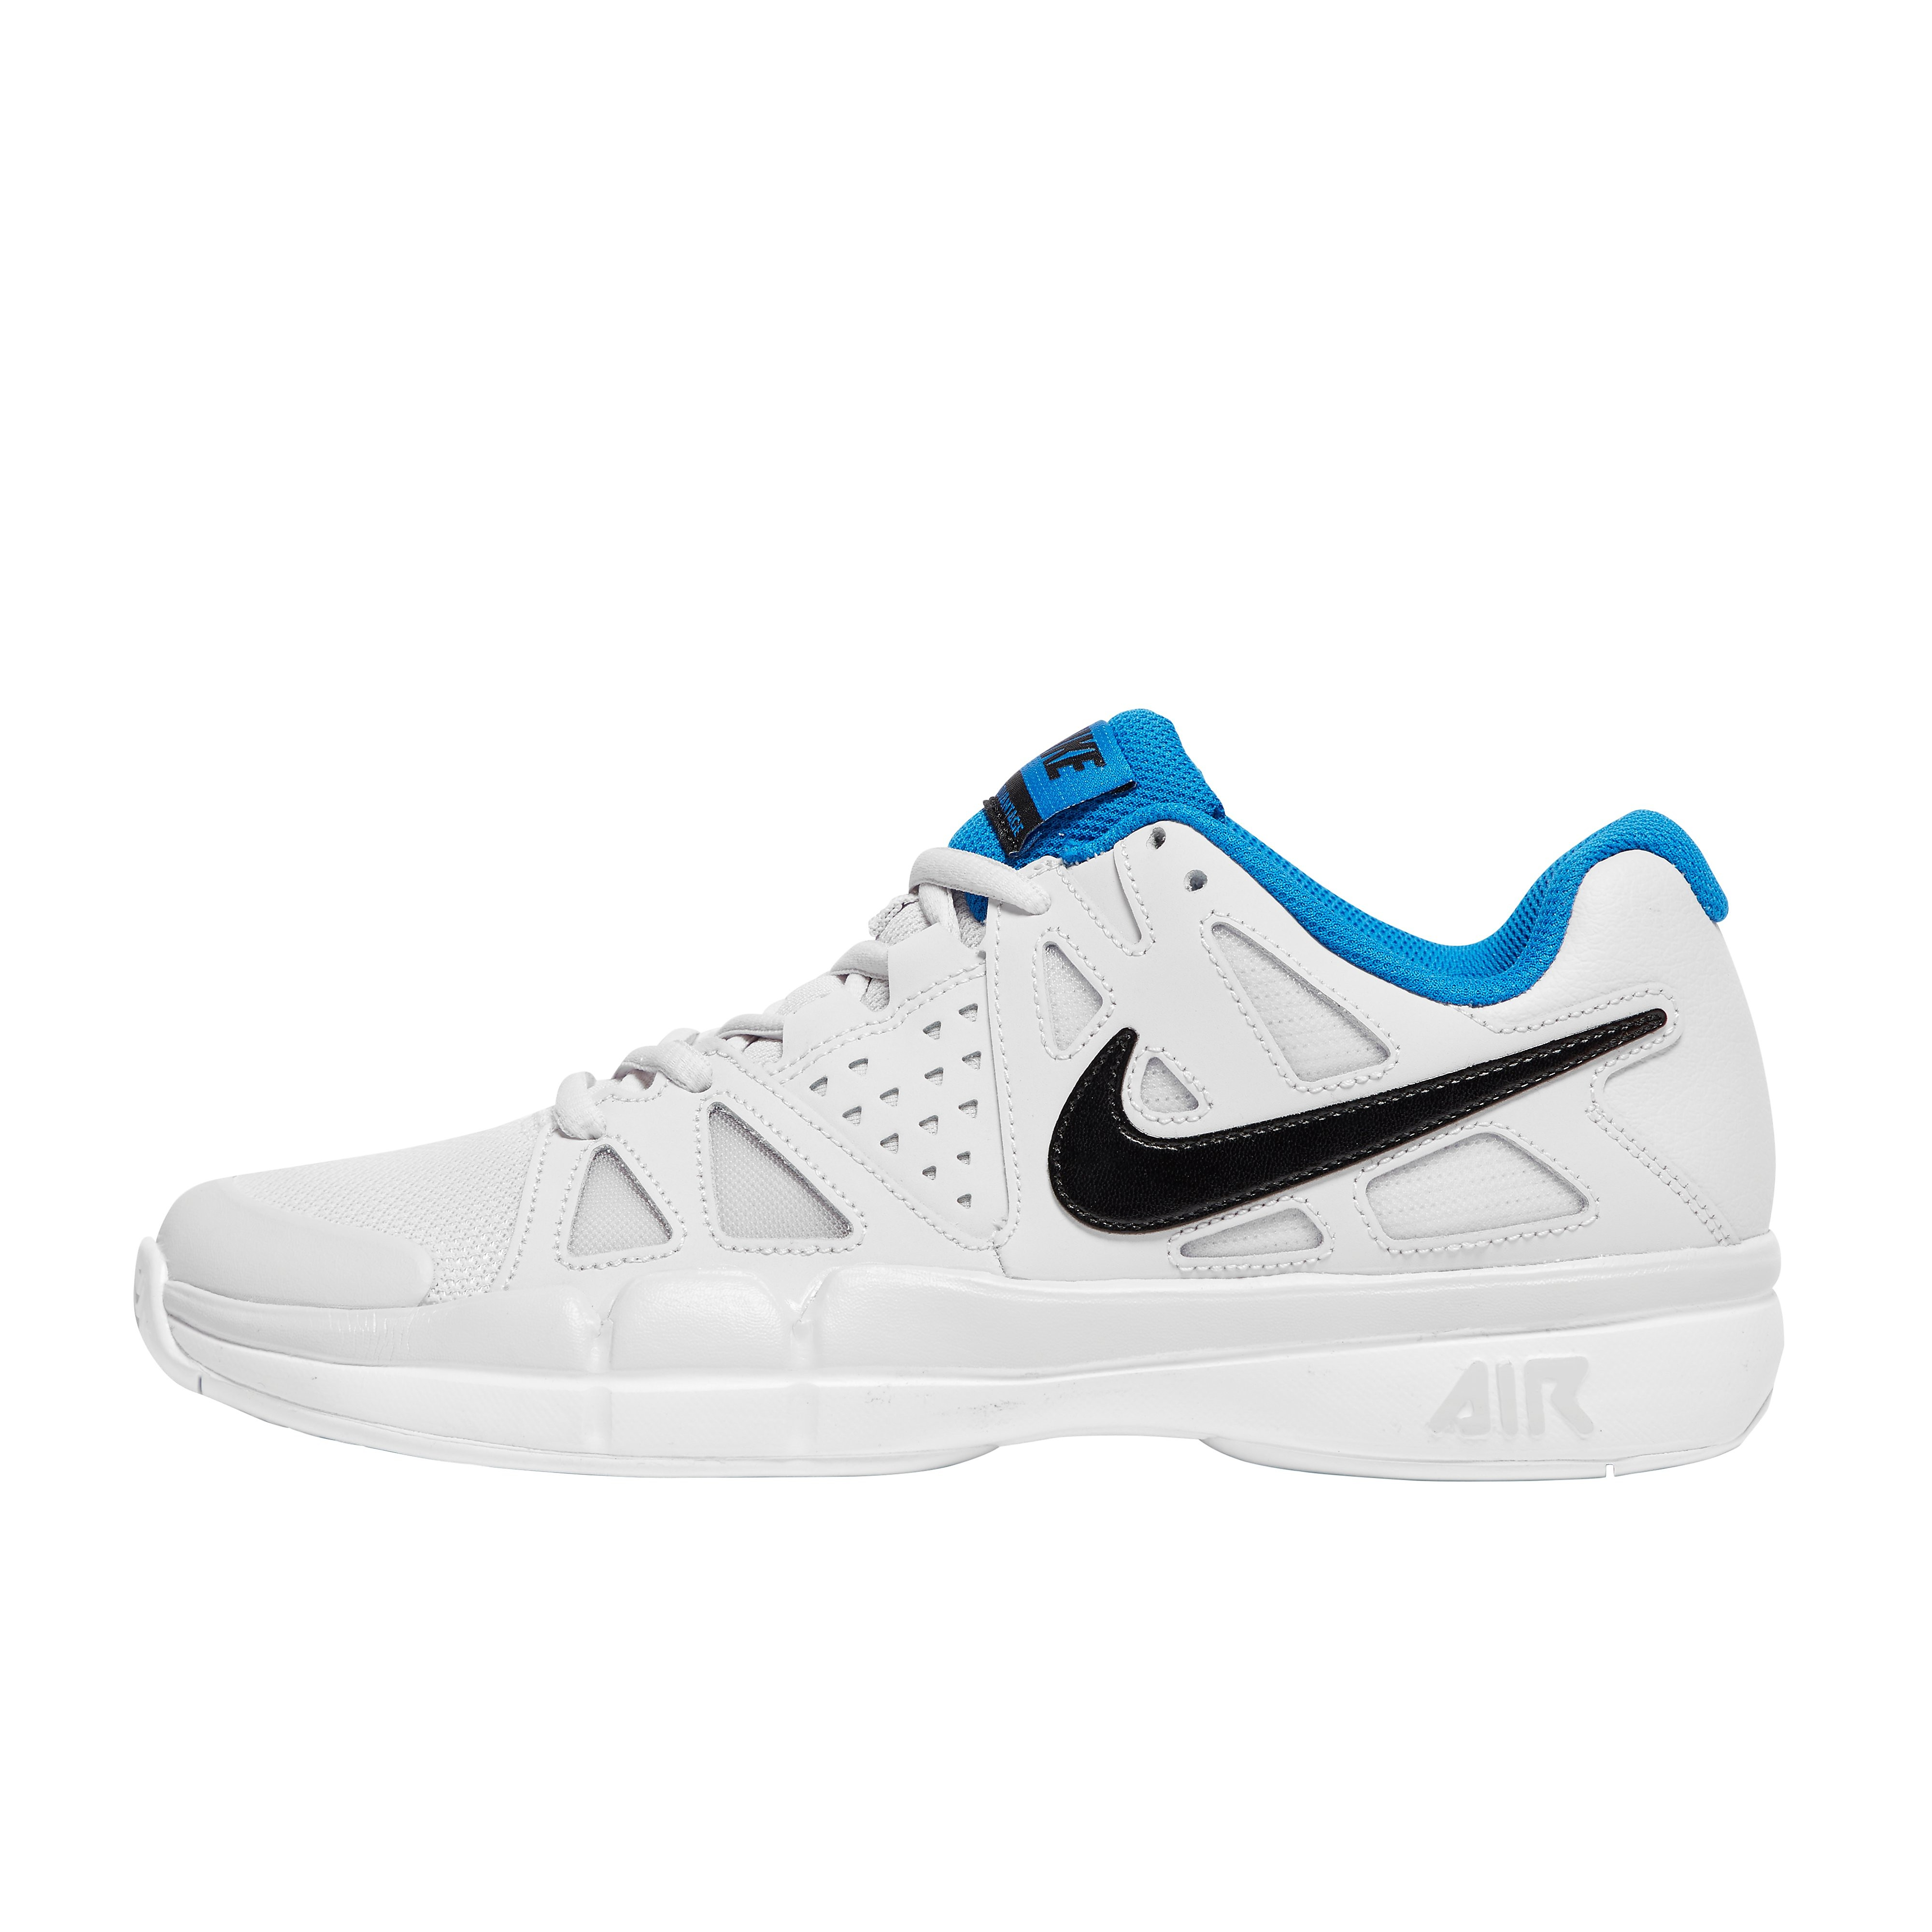 Nike NIKECOURT Air Vapor Advantage Men's Tennis Shoes